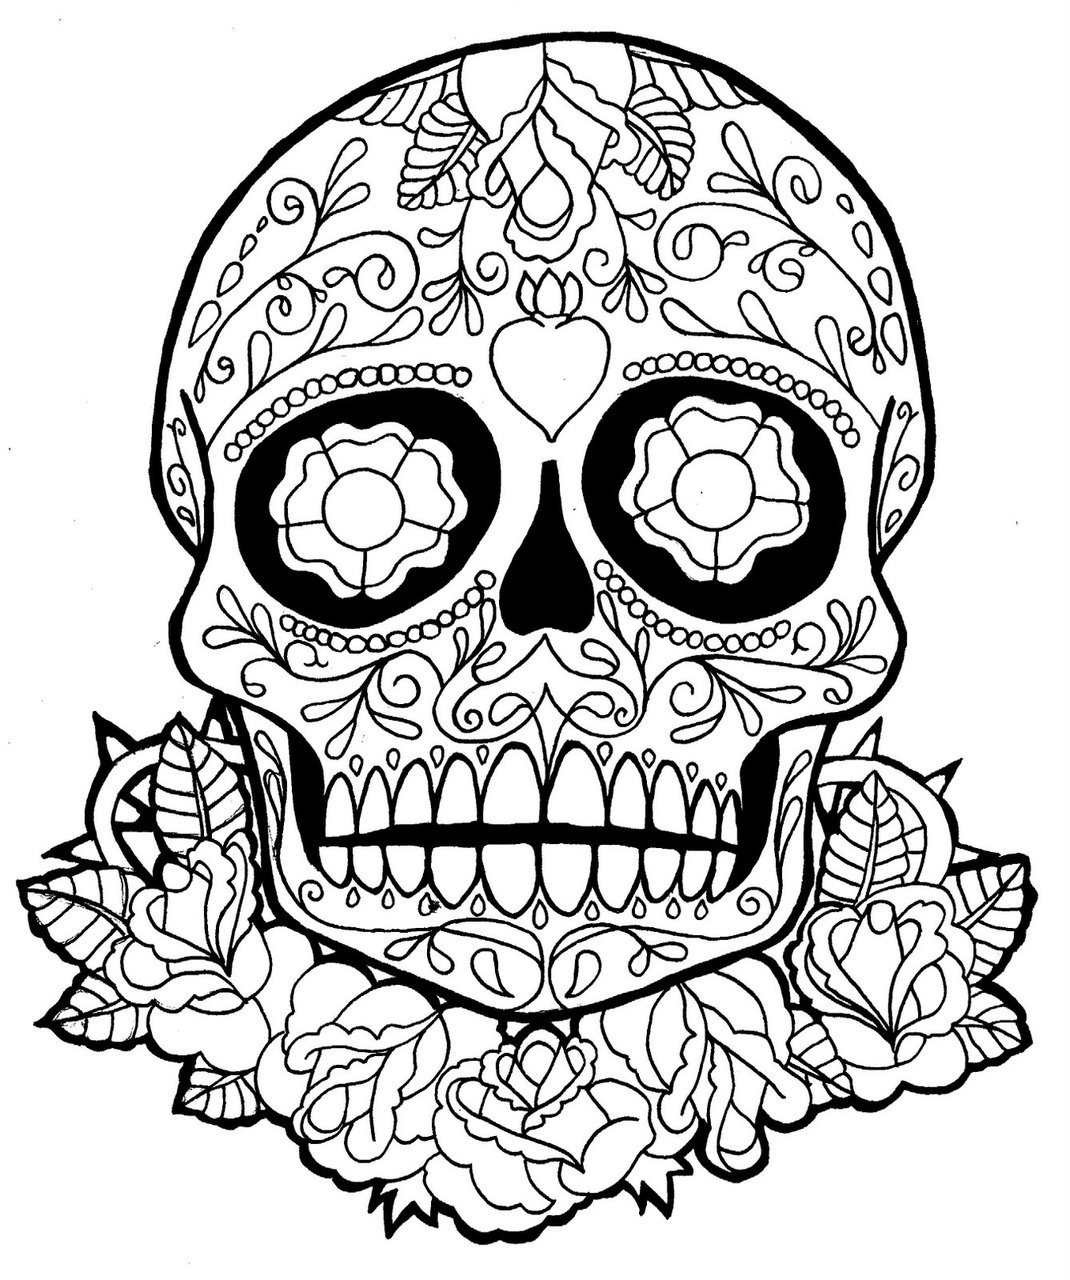 Adult Beauty Dia De Los Muertos Printable Coloring Pages Gallery Images cute dia de los muertos coloring pages to download and print for free gallery images